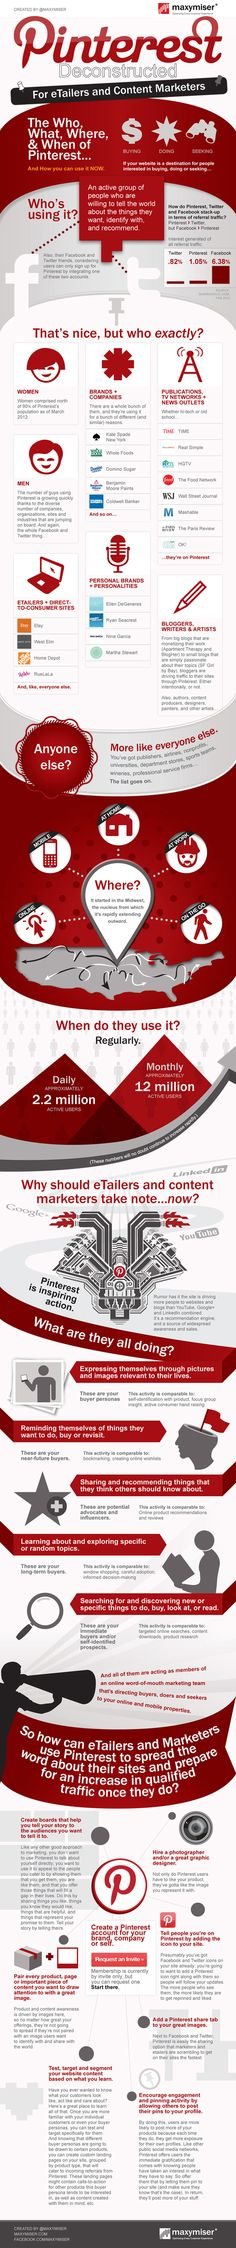 Pinterest for retailers and content marketers: infographic | Econsultancy